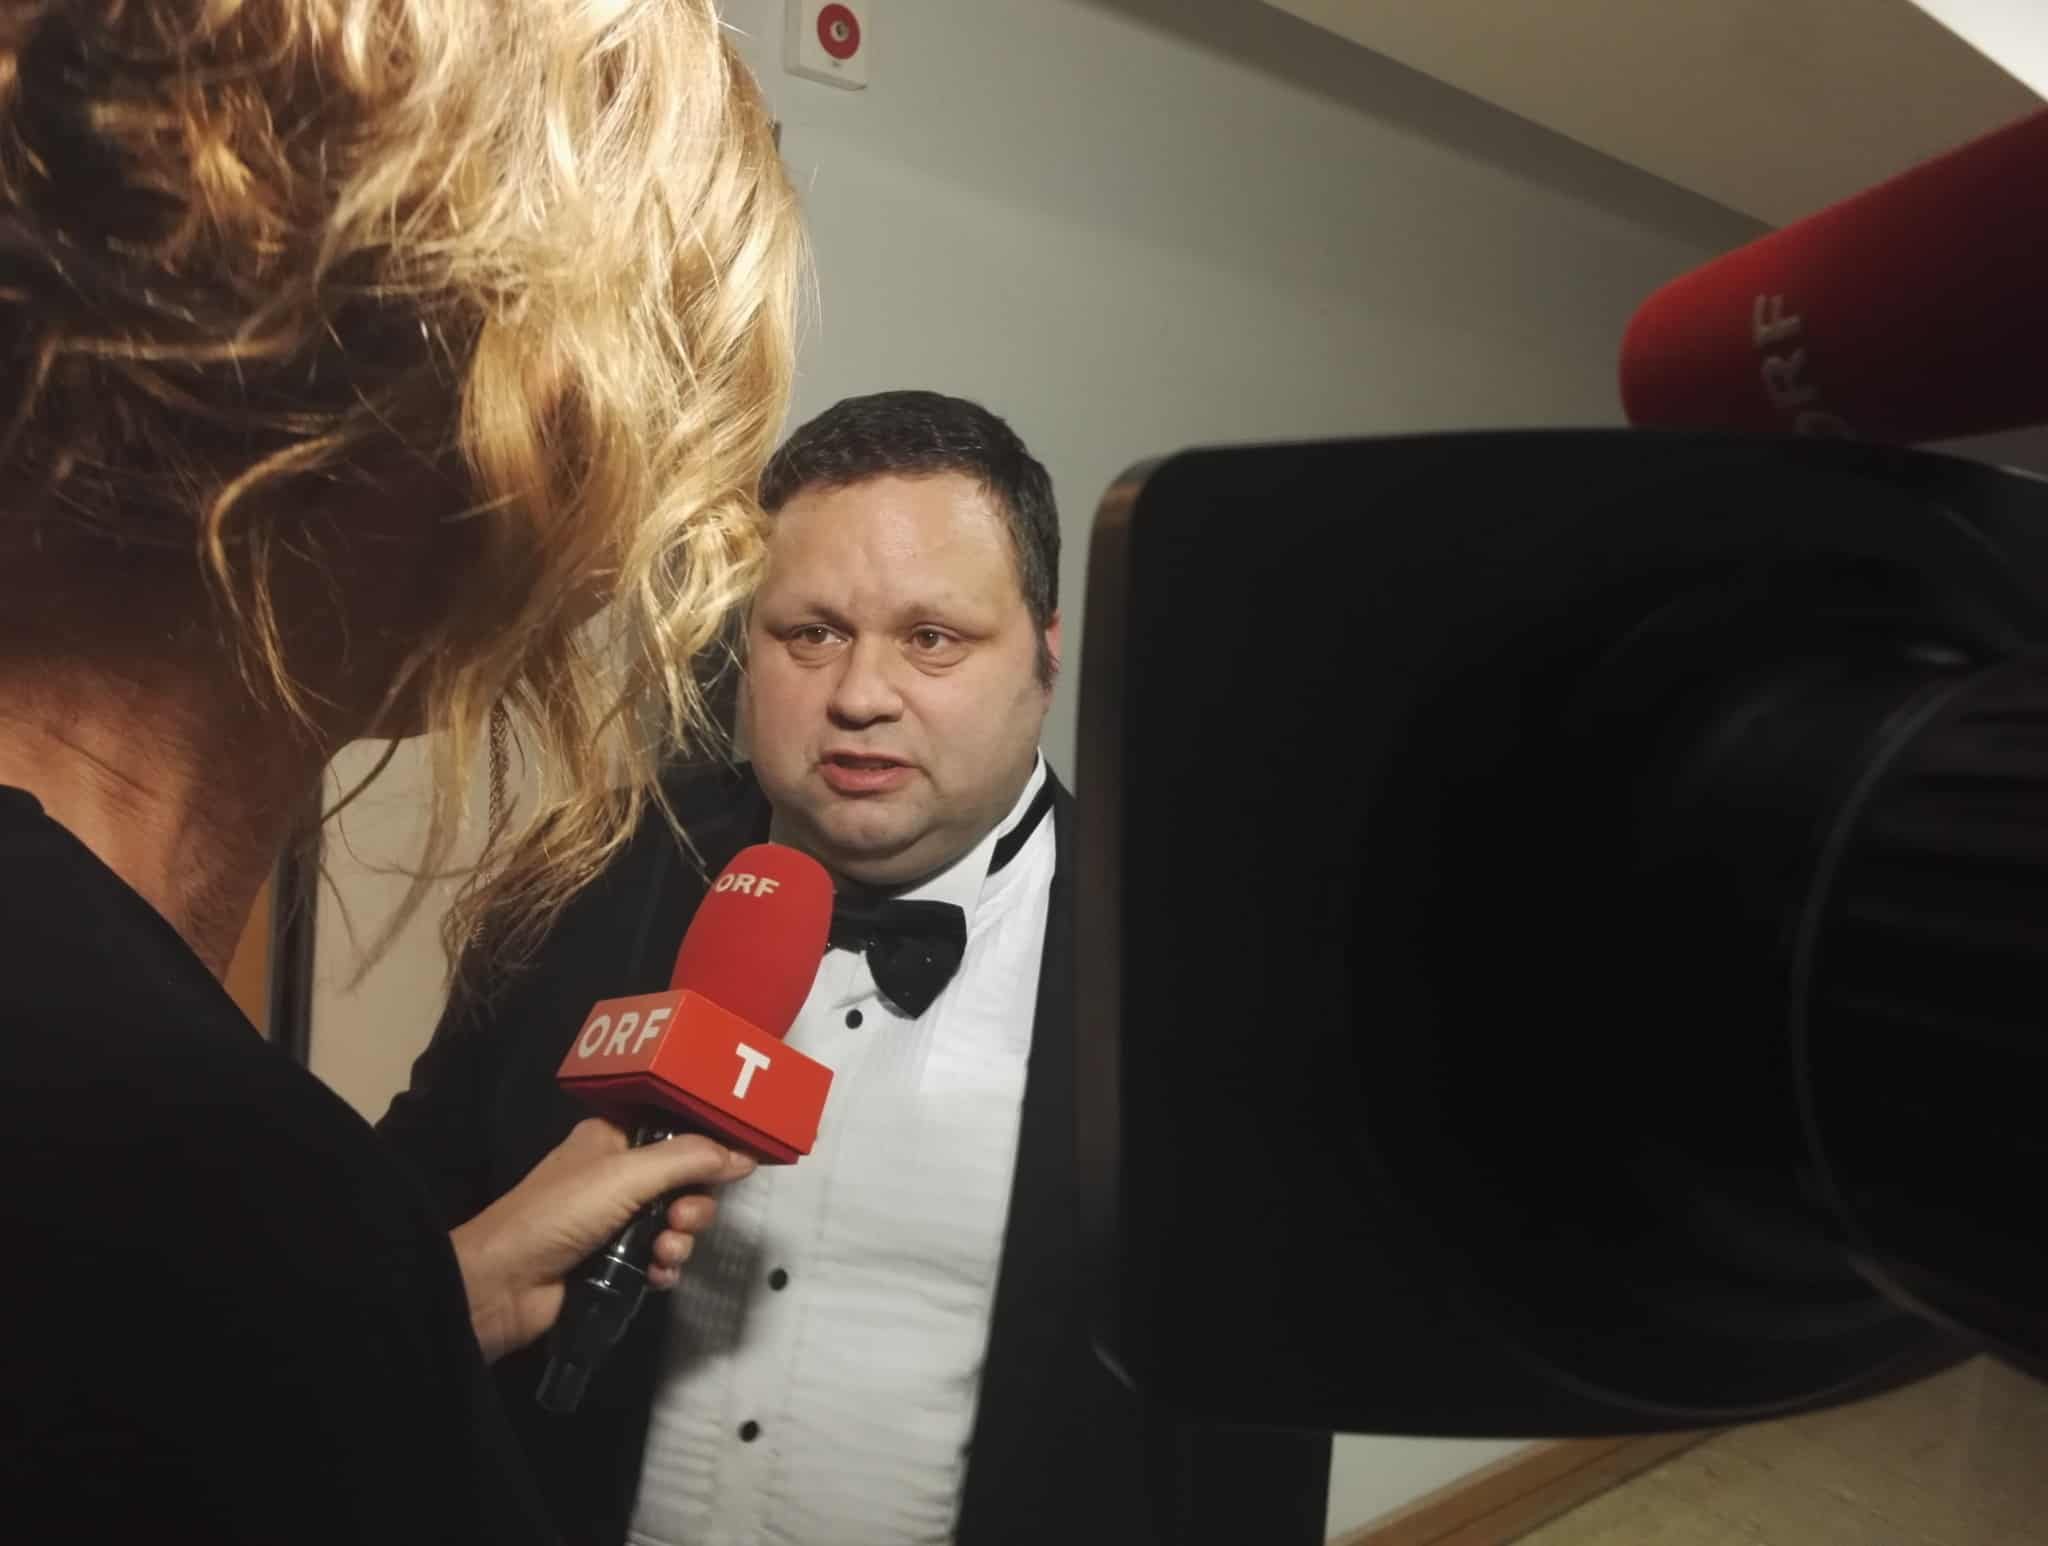 Paul Potts - Paul Potts